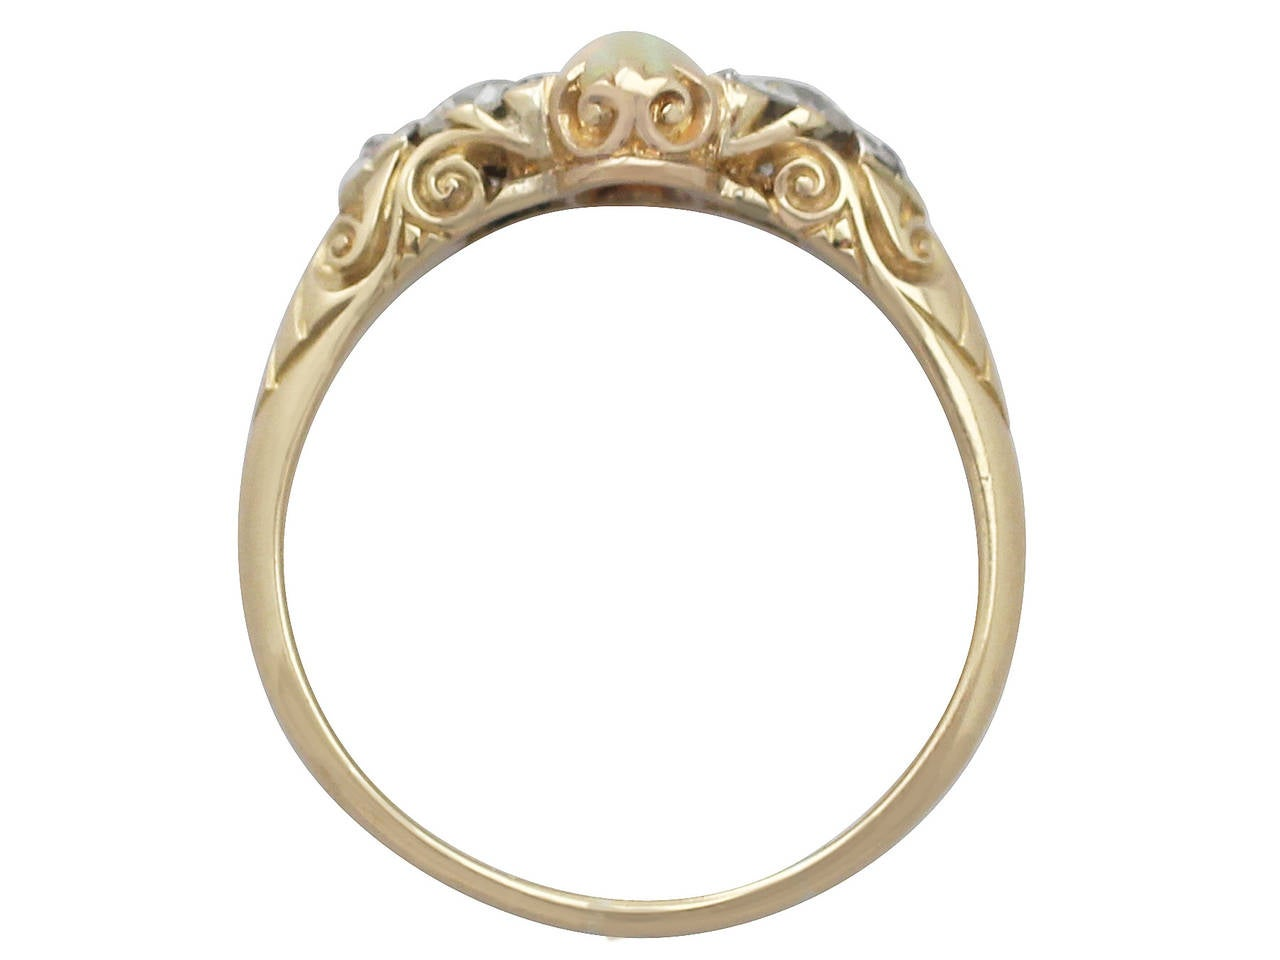 0.48Ct Opal & 0.76Ct Diamond 18k Yellow Gold Trilogy Ring - Antique Victorian 5